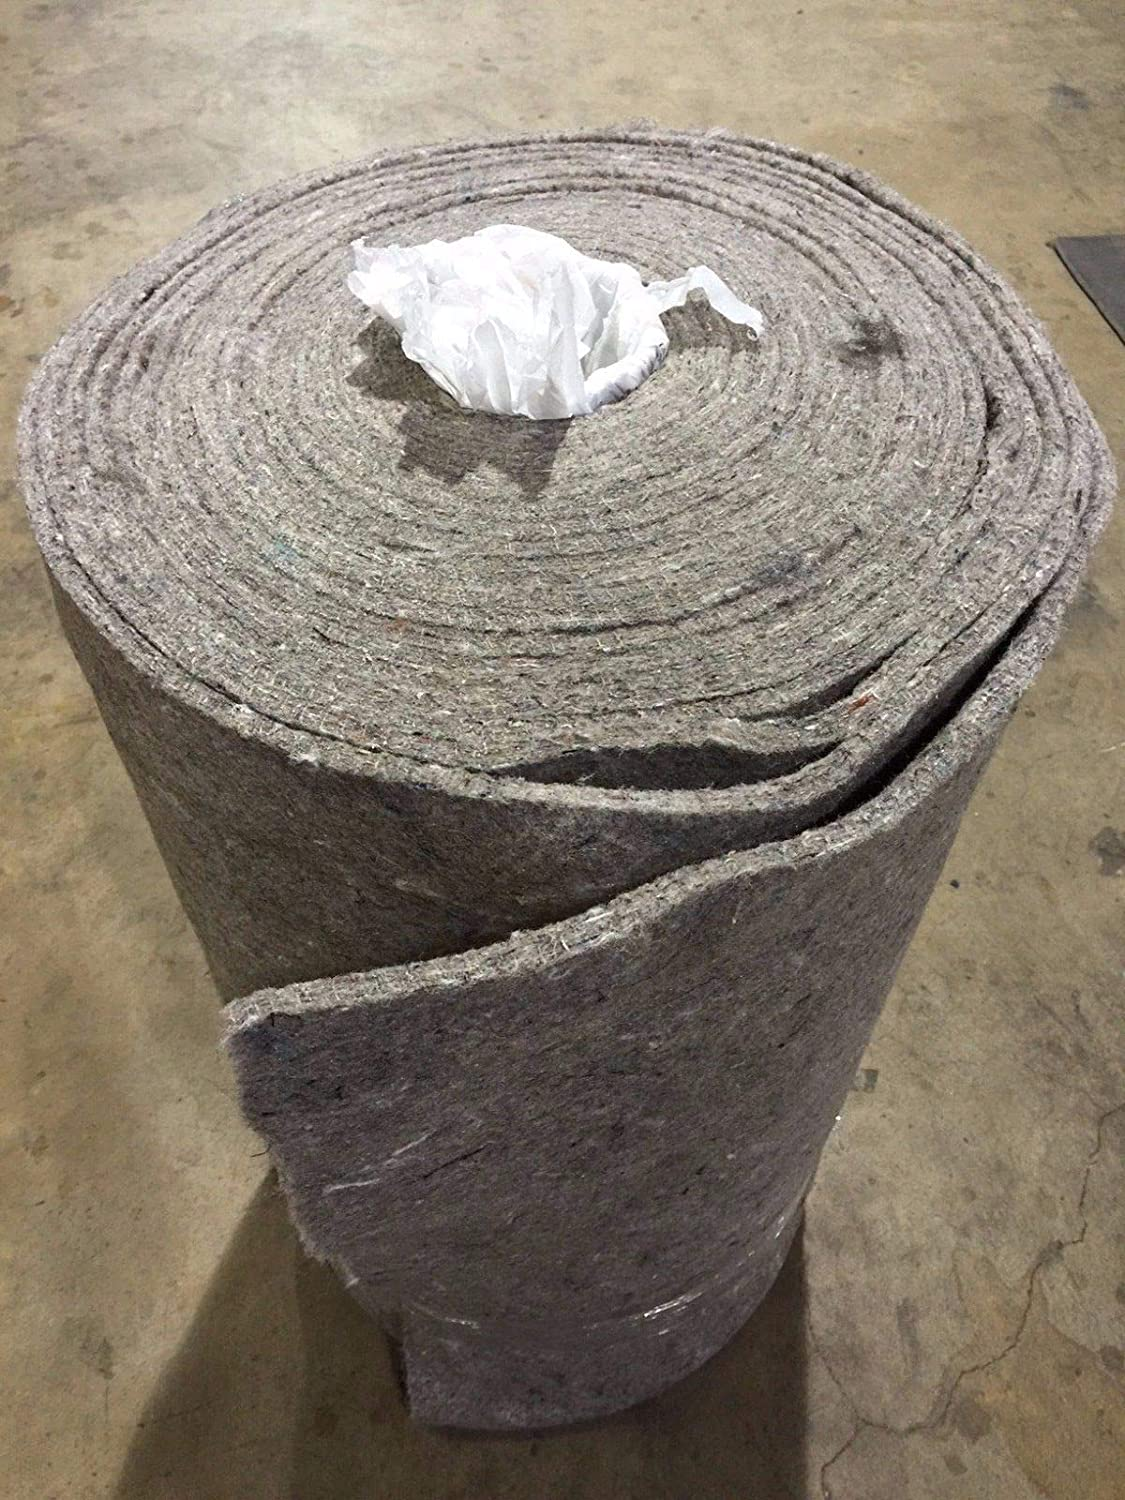 Bry-Tech Furniture1 Automotive Jute Carpet Padding 27 oz 36 Wide Sample 3 x 3 goes Under Carpet in Cars and Trucks